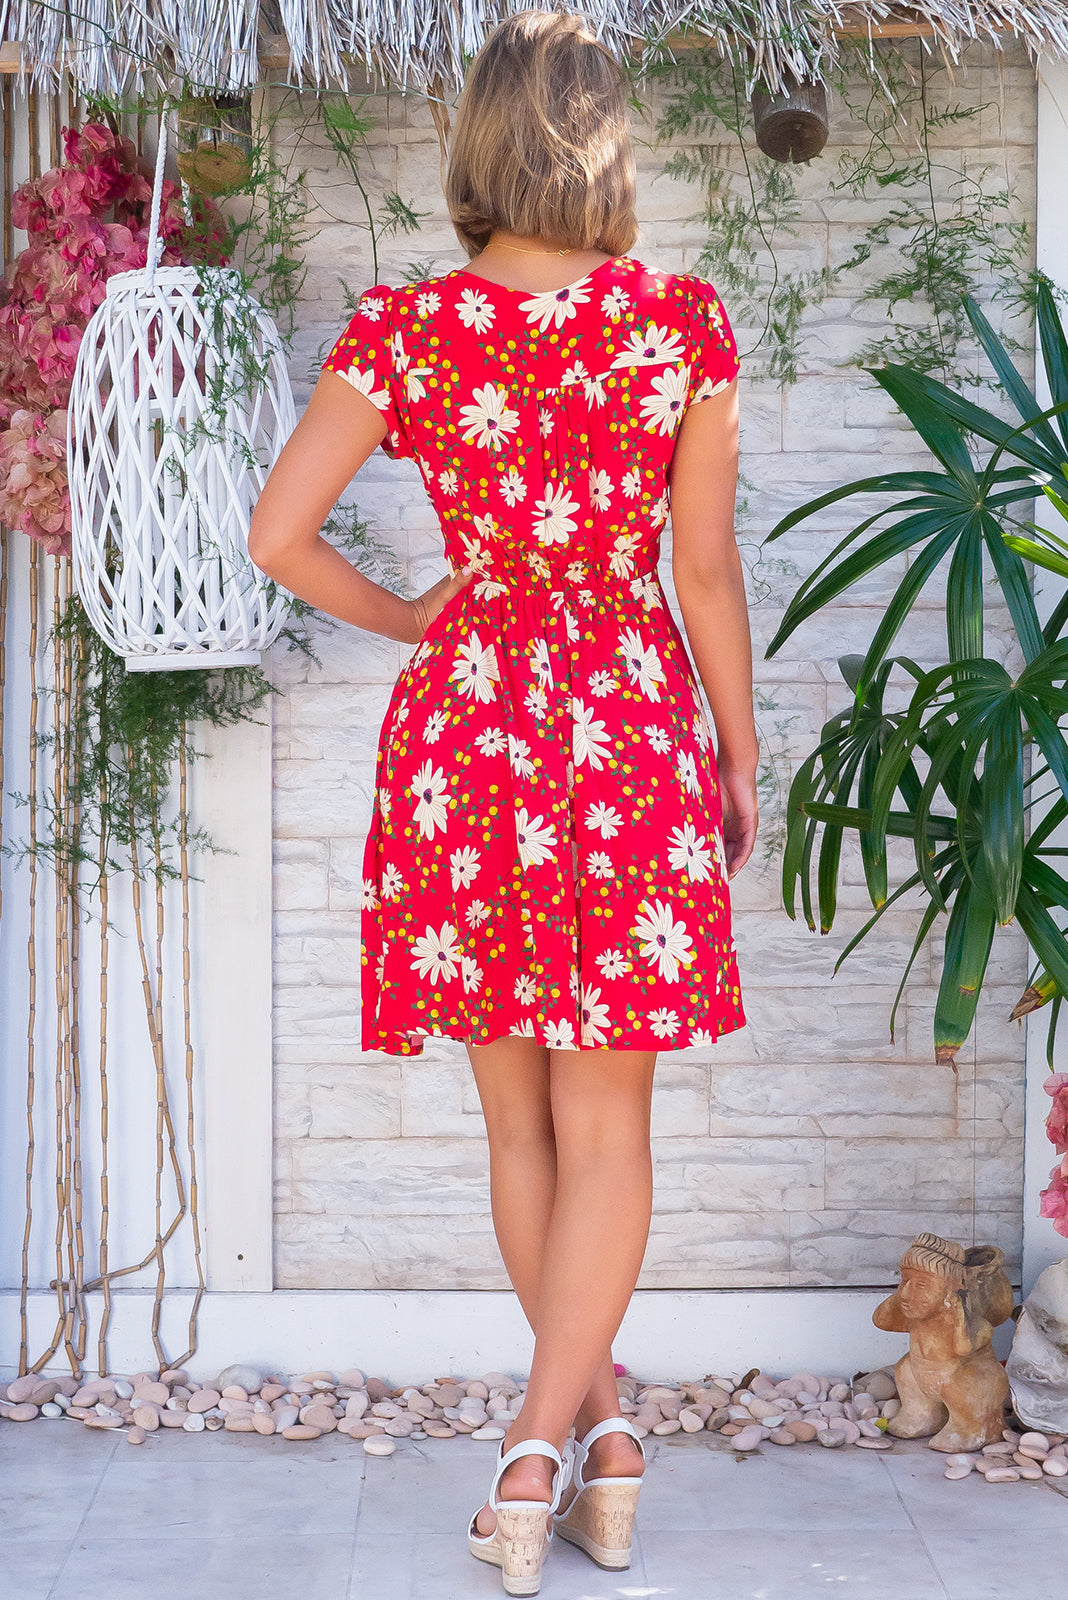 The Maggie May Days in Red Dress features gathered bust with basque underneath, waist features comfortable elastic shirring at back, cap sleeves, deep side pockets, flirty skirt draping from underneath bust and 100% rayon in red base with daisies and flower bud print.